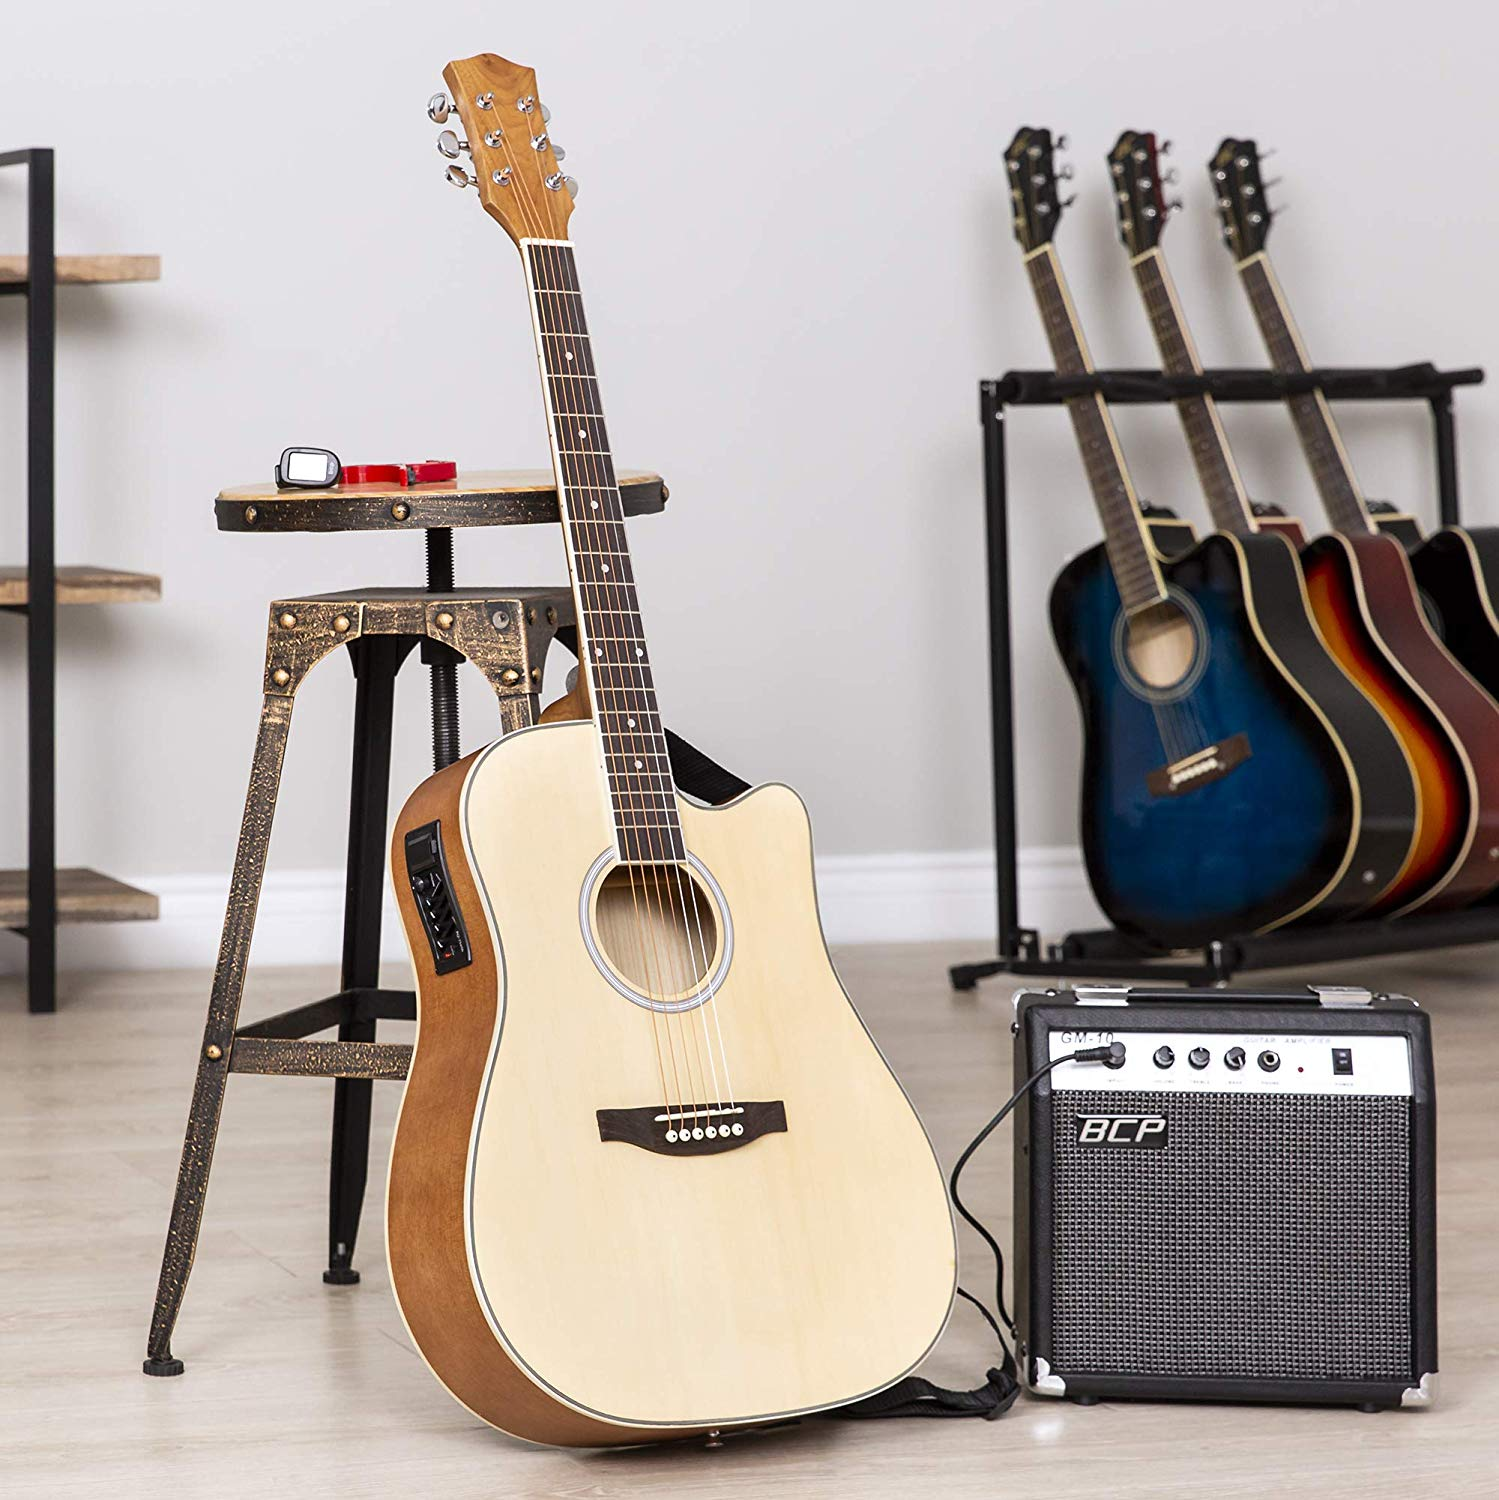 The Natural Colored BC Acoustic-Electric Guitar standing upright on display